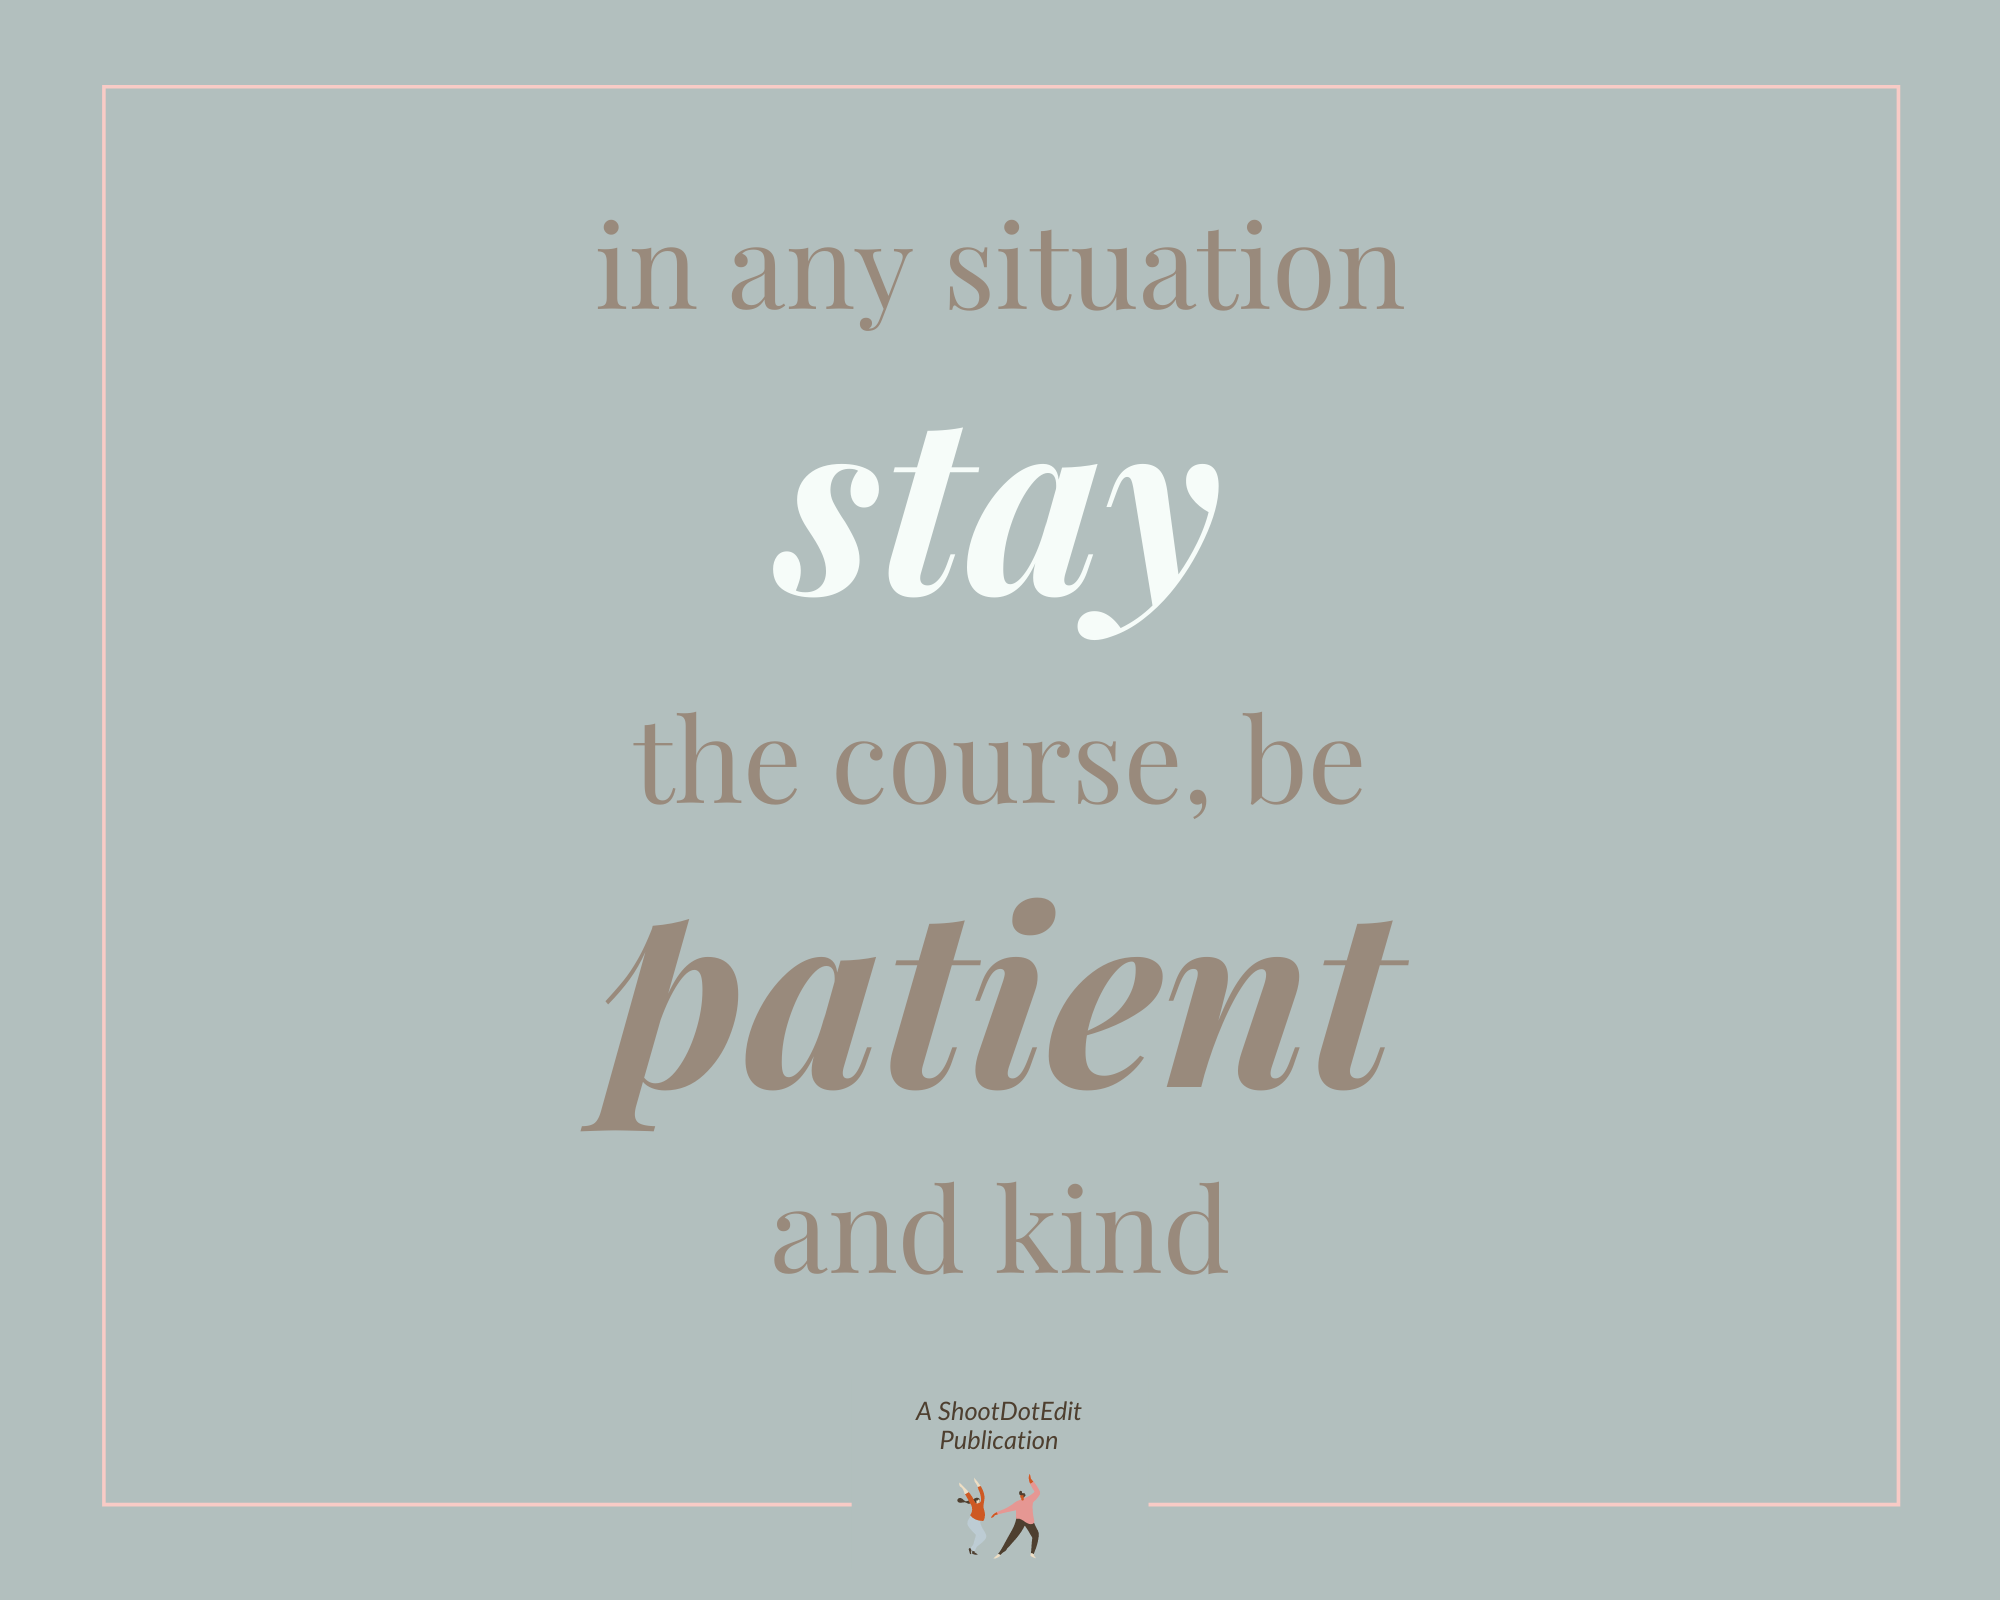 Infographic stating In any situation stay the course, be patient and kind